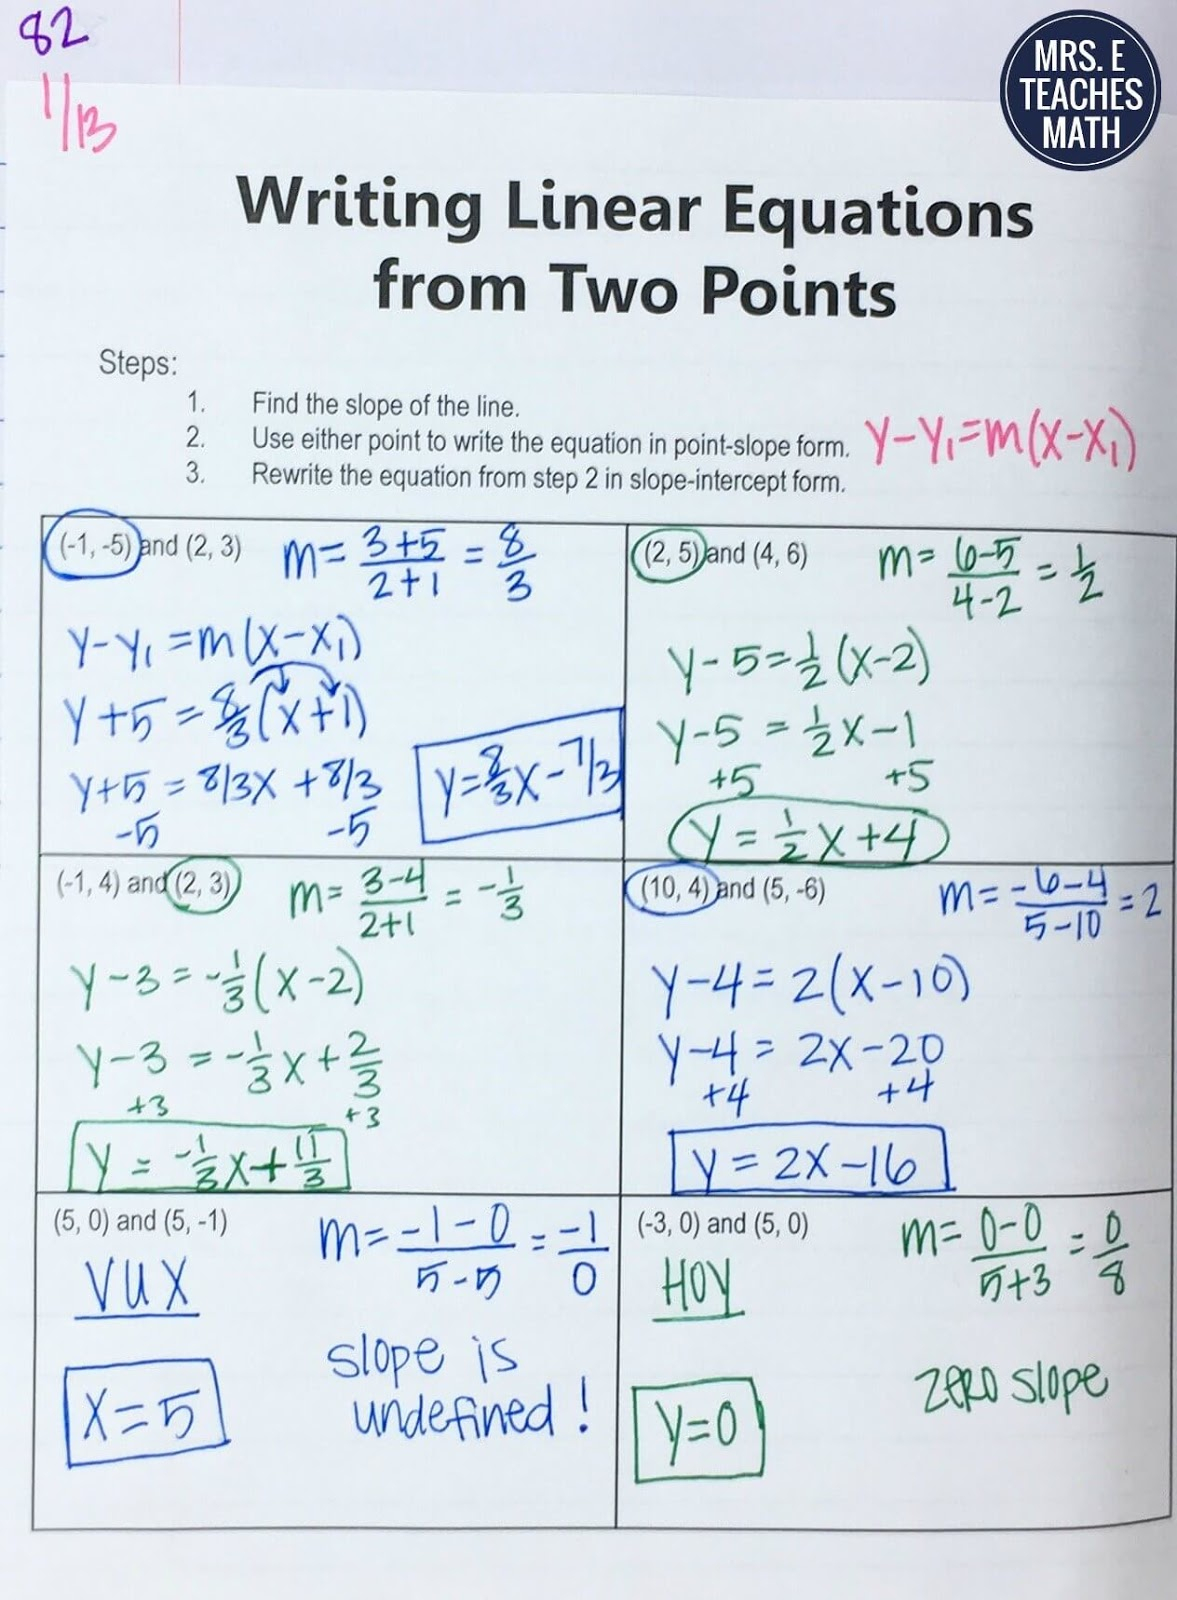 Writing Equations In Slope Intercept Form Given Two Points